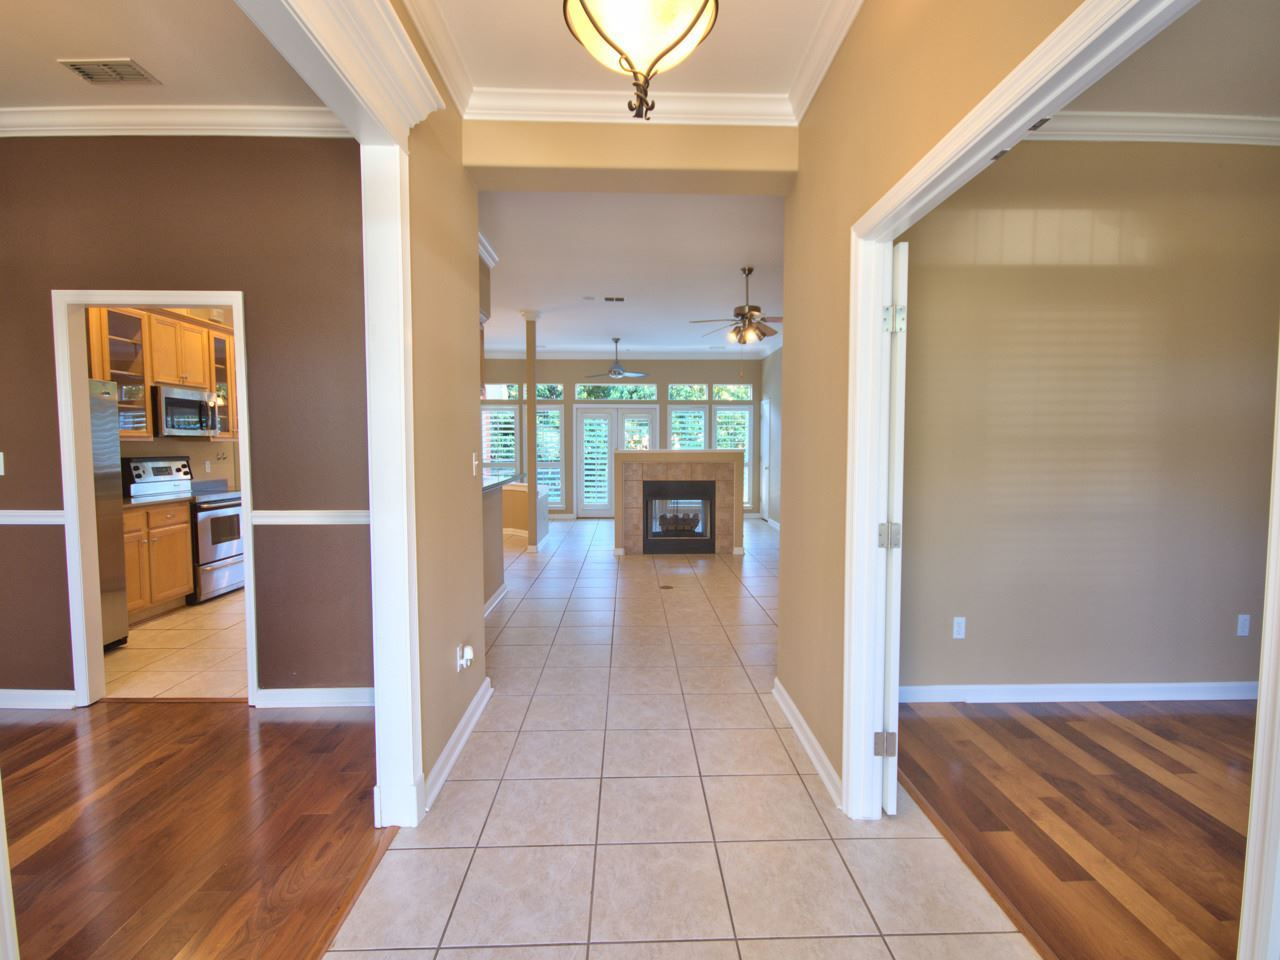 Photo of 8162 Bloys Court, TALLAHASSEE, FL 32312 (MLS # 315099)